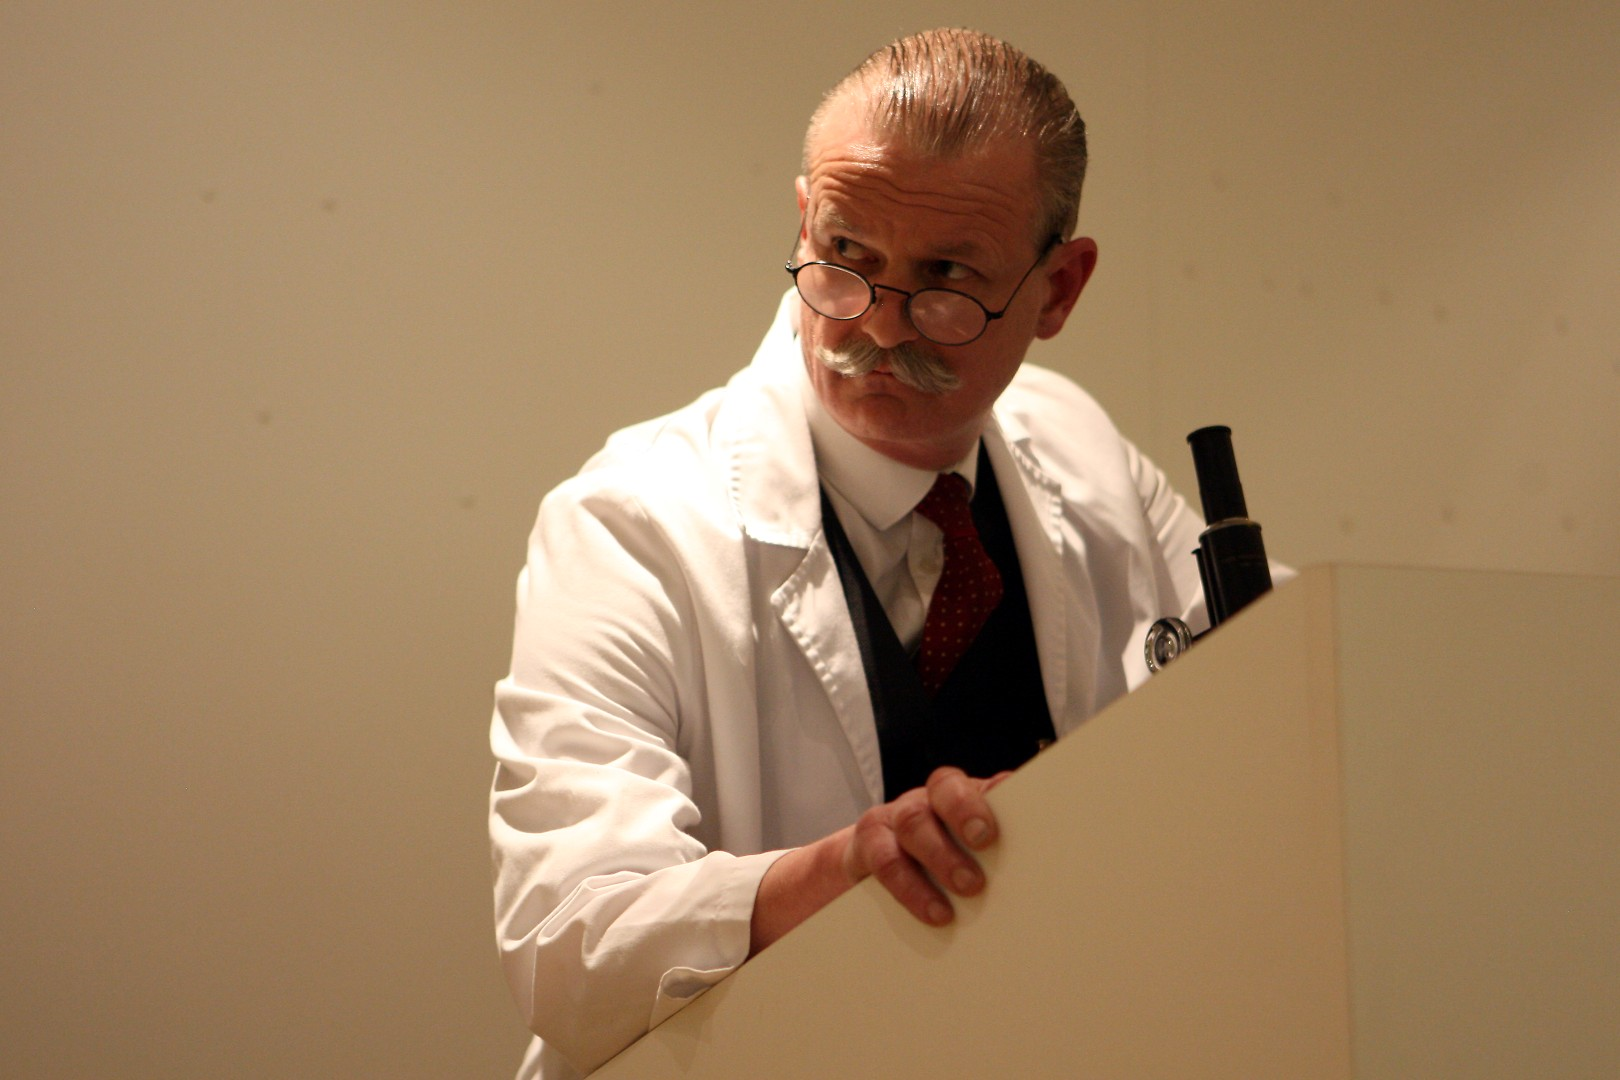 A mustachioed biologist in a white lab coat looking concerned.